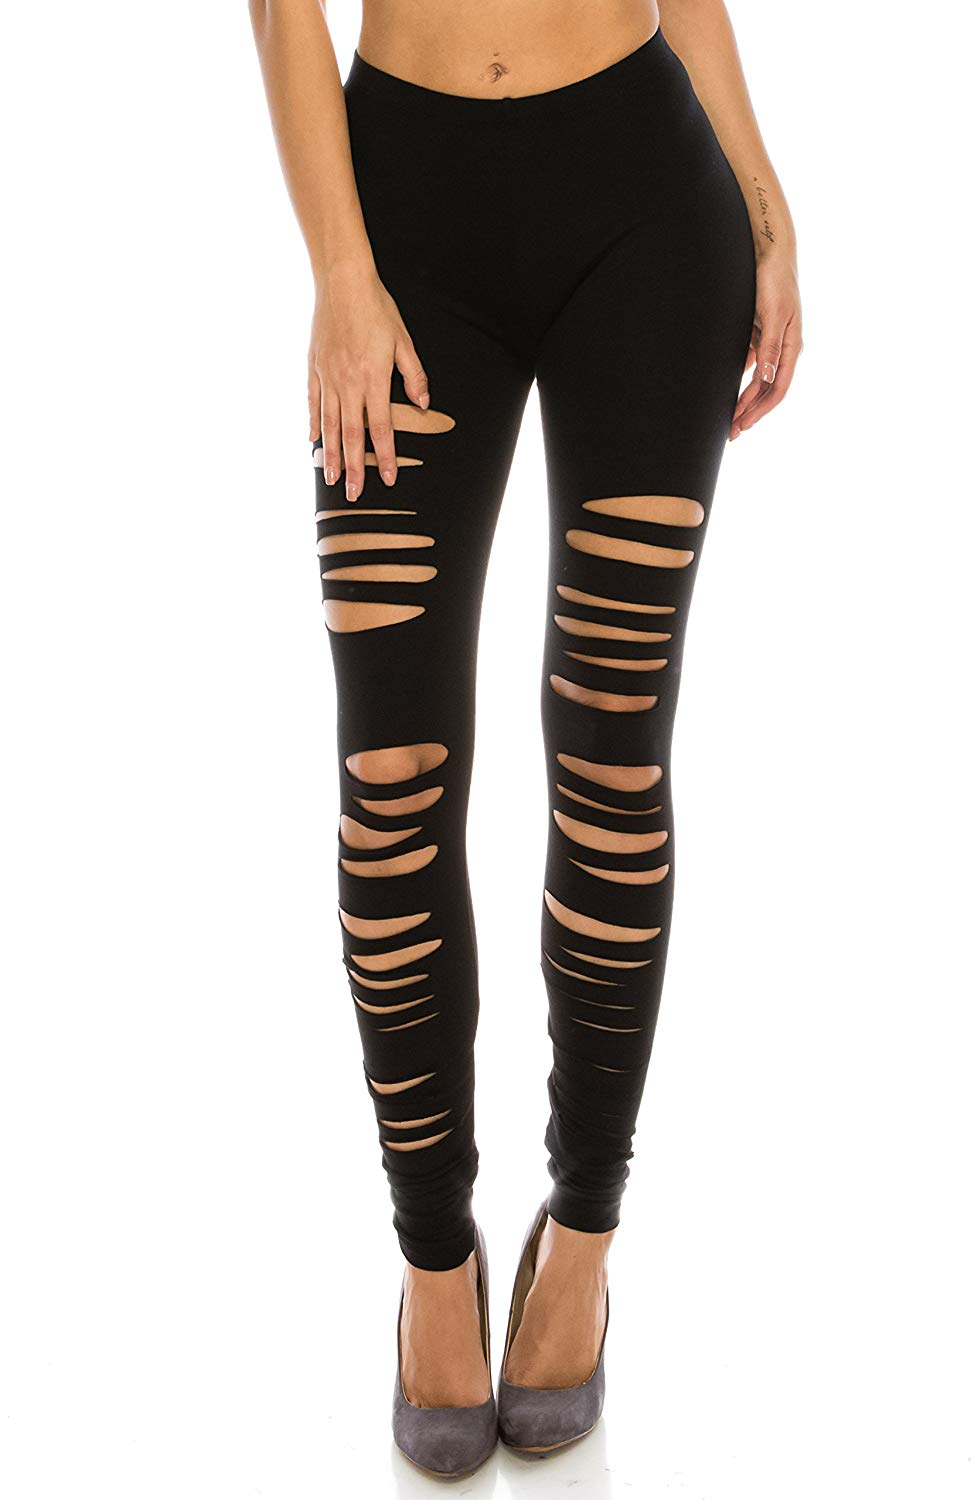 dc4ac714d253d0 Get Quotations · The Classic Full Length Elastic Hole Cut Out Ripped  Stretch Leggings Tights (also in Plus